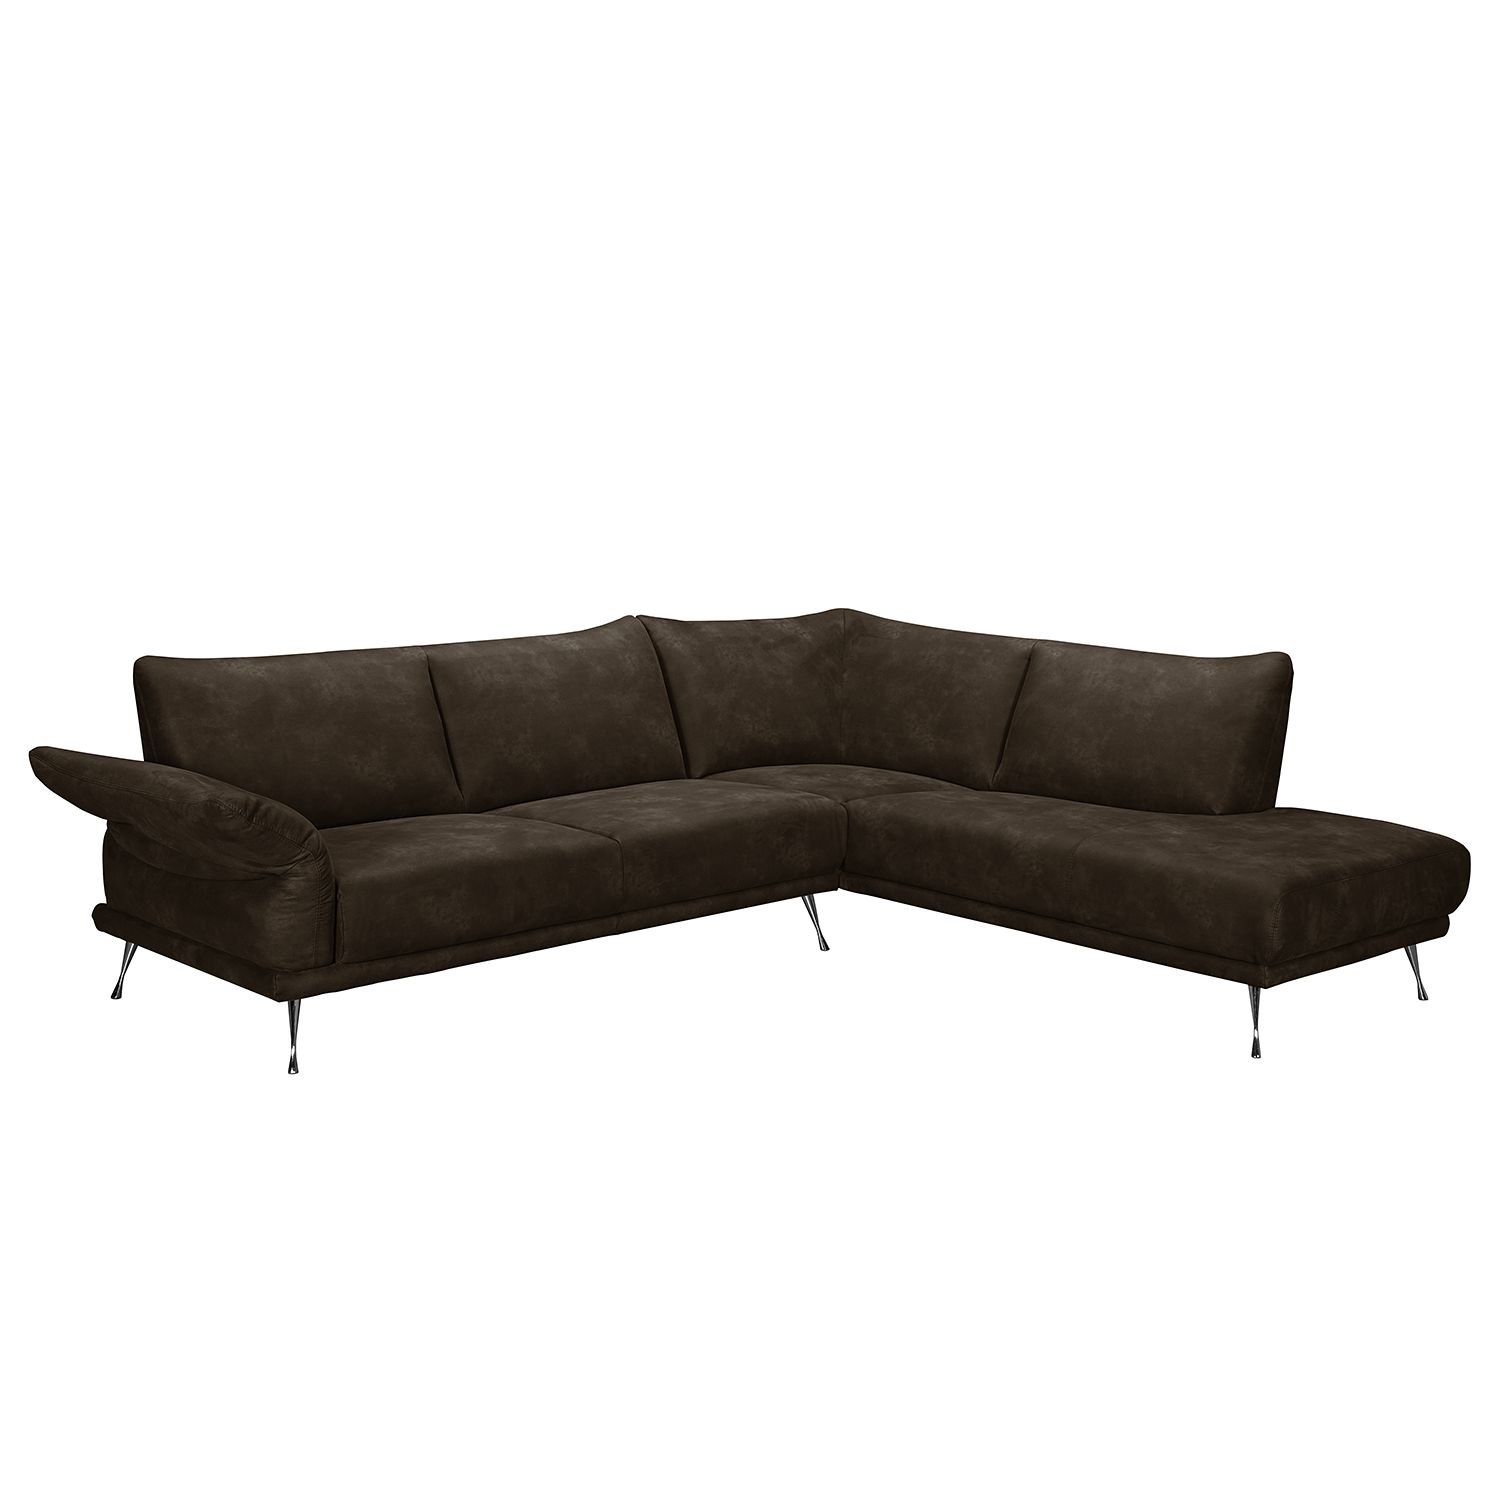 ecksofa milan microfaser ottomane davorstehend rechts espresso loftscape online kaufen. Black Bedroom Furniture Sets. Home Design Ideas